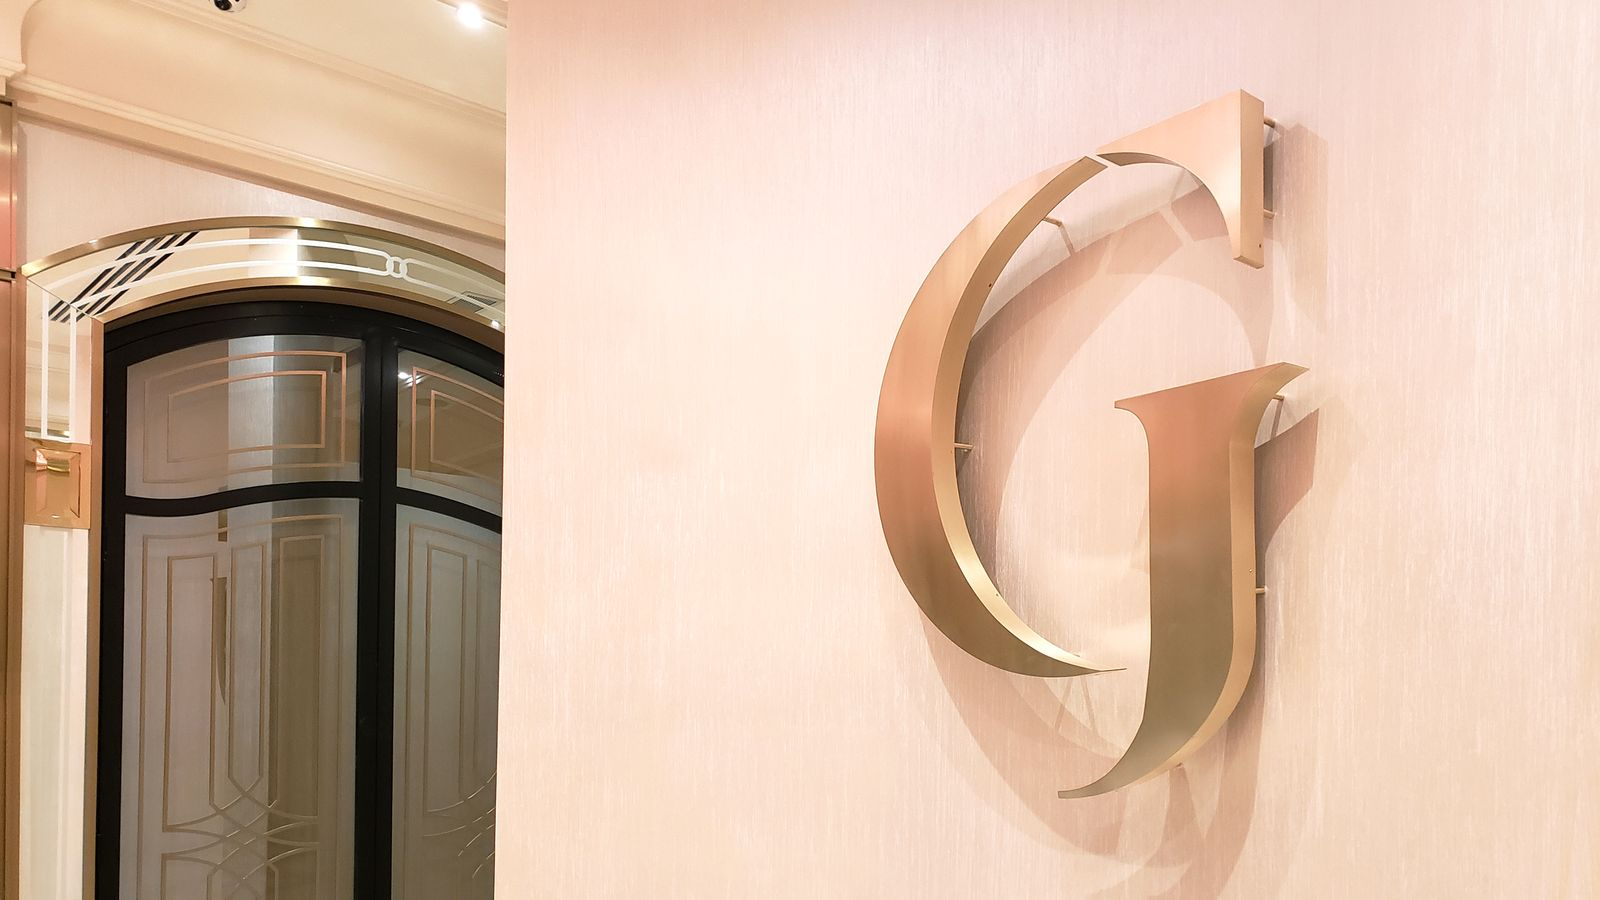 Grand Venue 3d logo sign with the letter G made of aluminum for interior branding